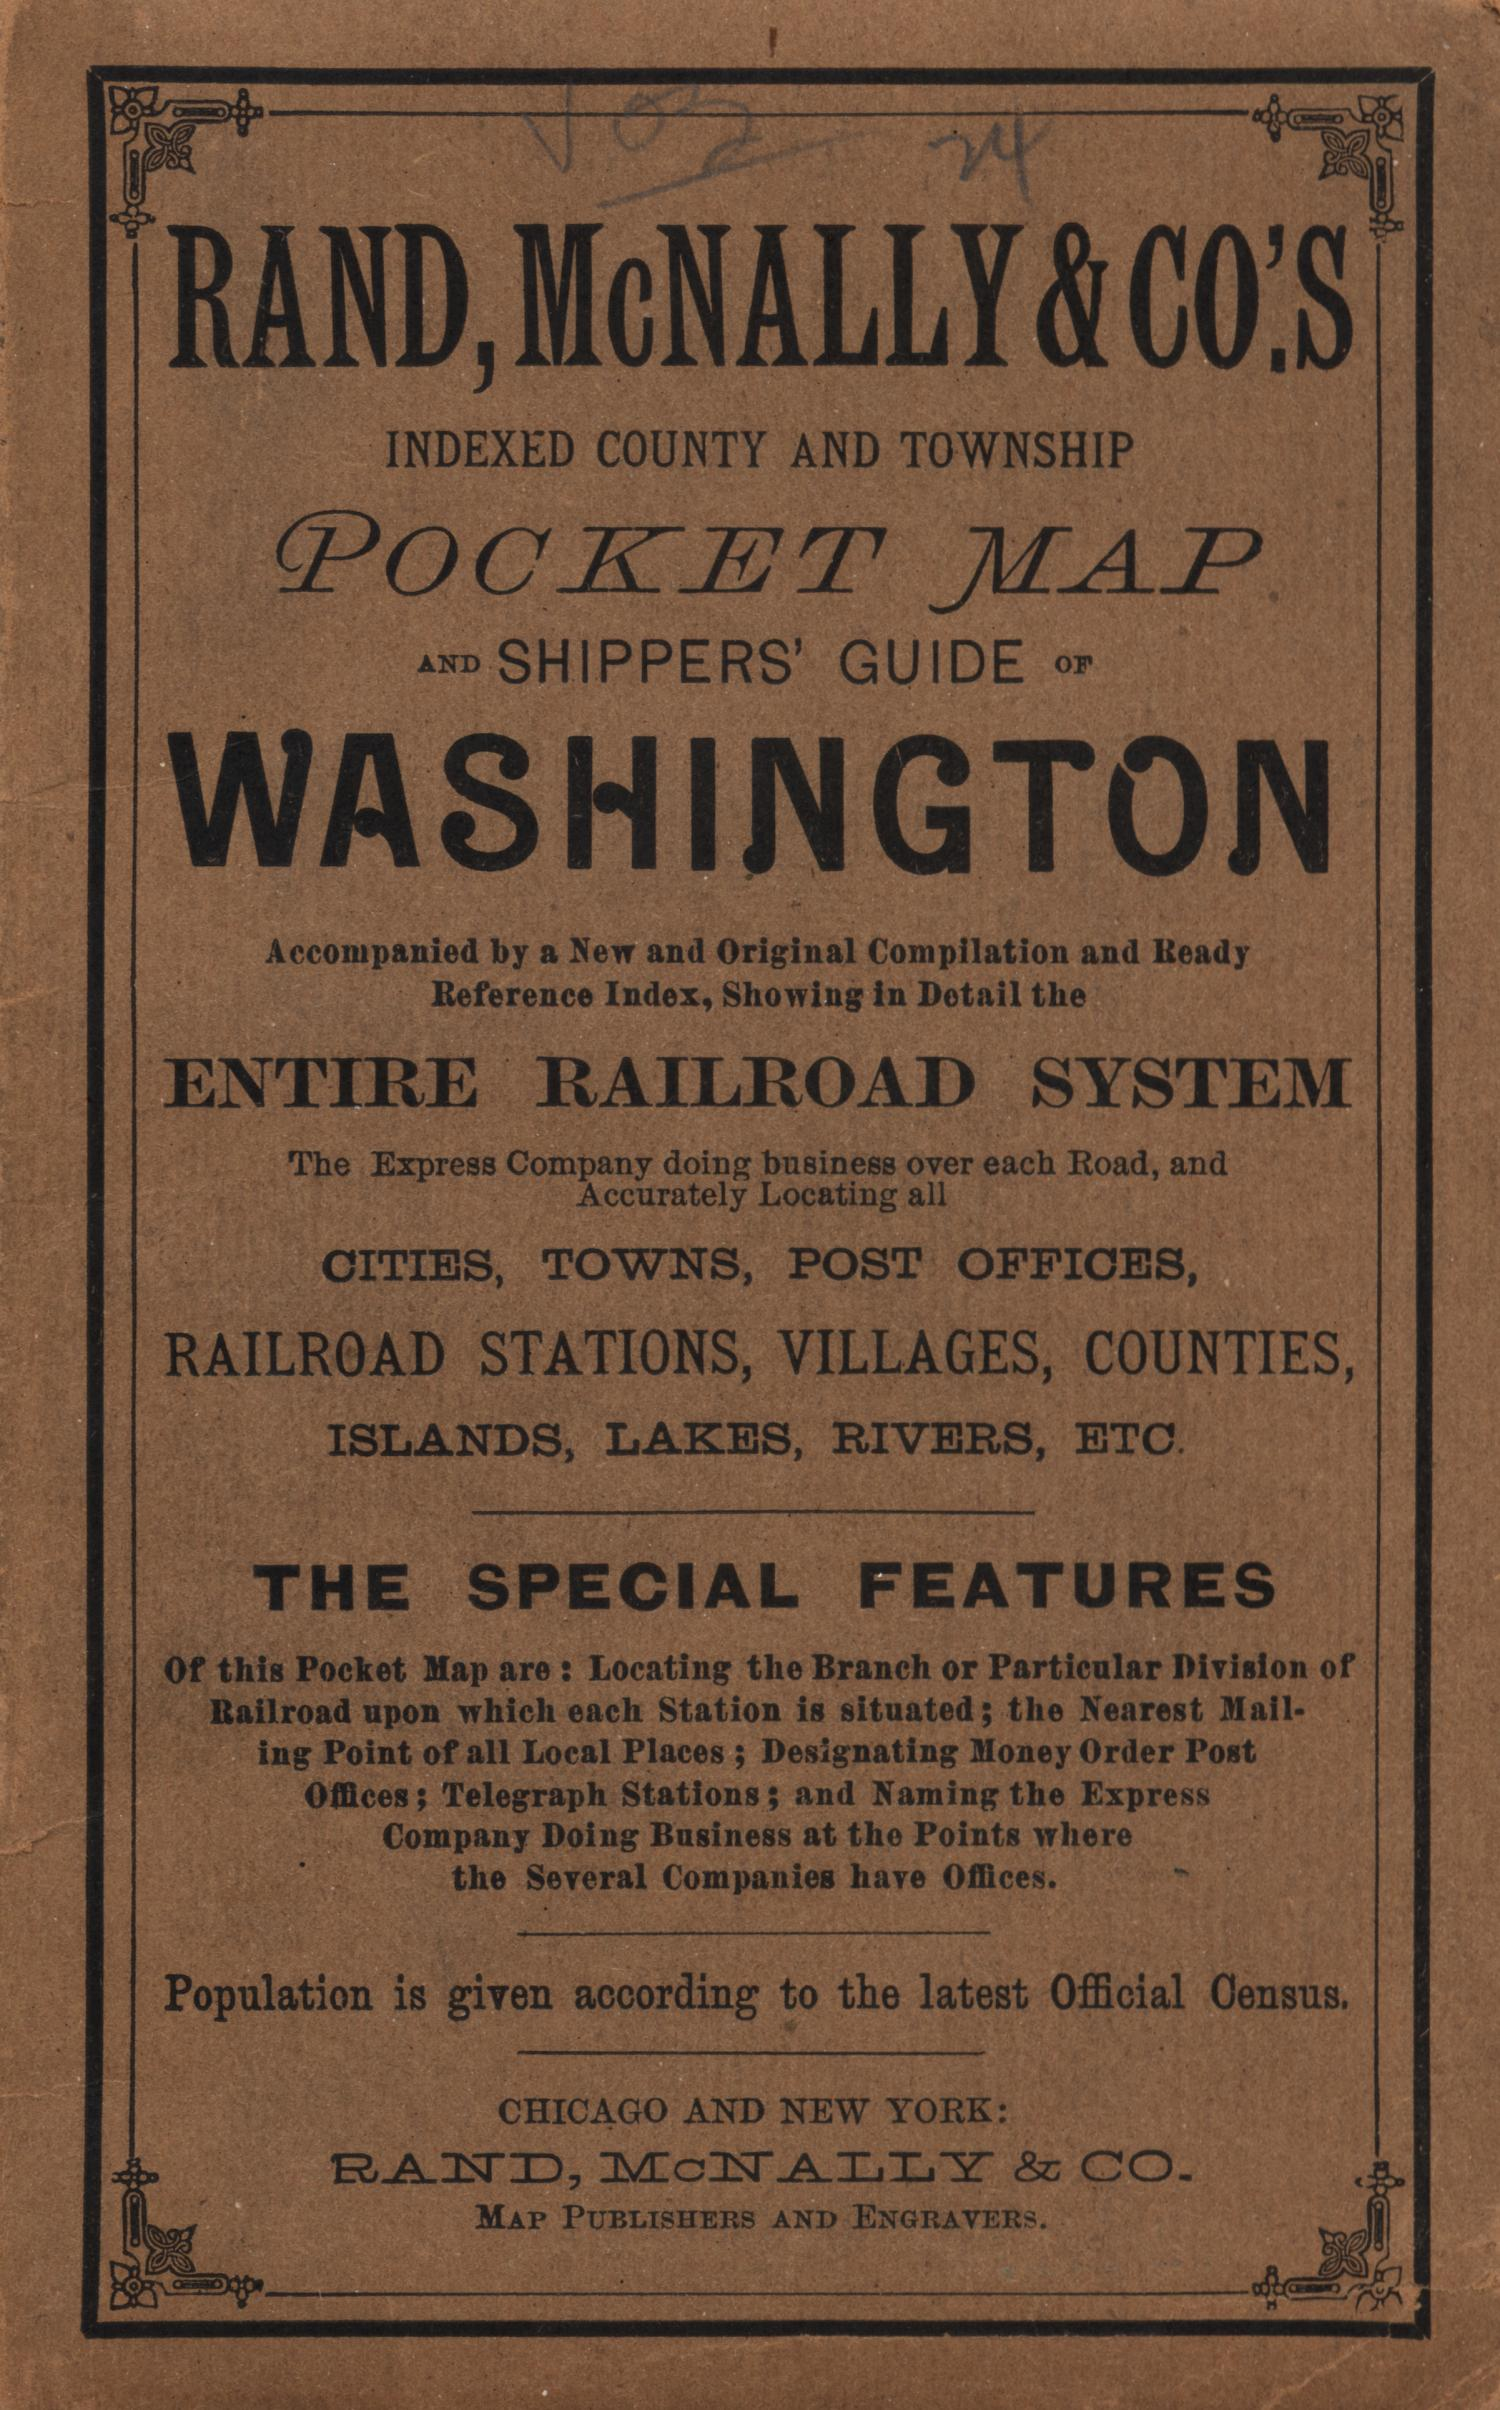 Rand, McNally & Co.s indexed county and township pocket map and shippers guide of Washington [Accompanying Text]., Explanation and supporting information related to map that shows late nineteenth century Washington counties, township grid, Native American reservations, railroads, national parks, and notable physical features.,